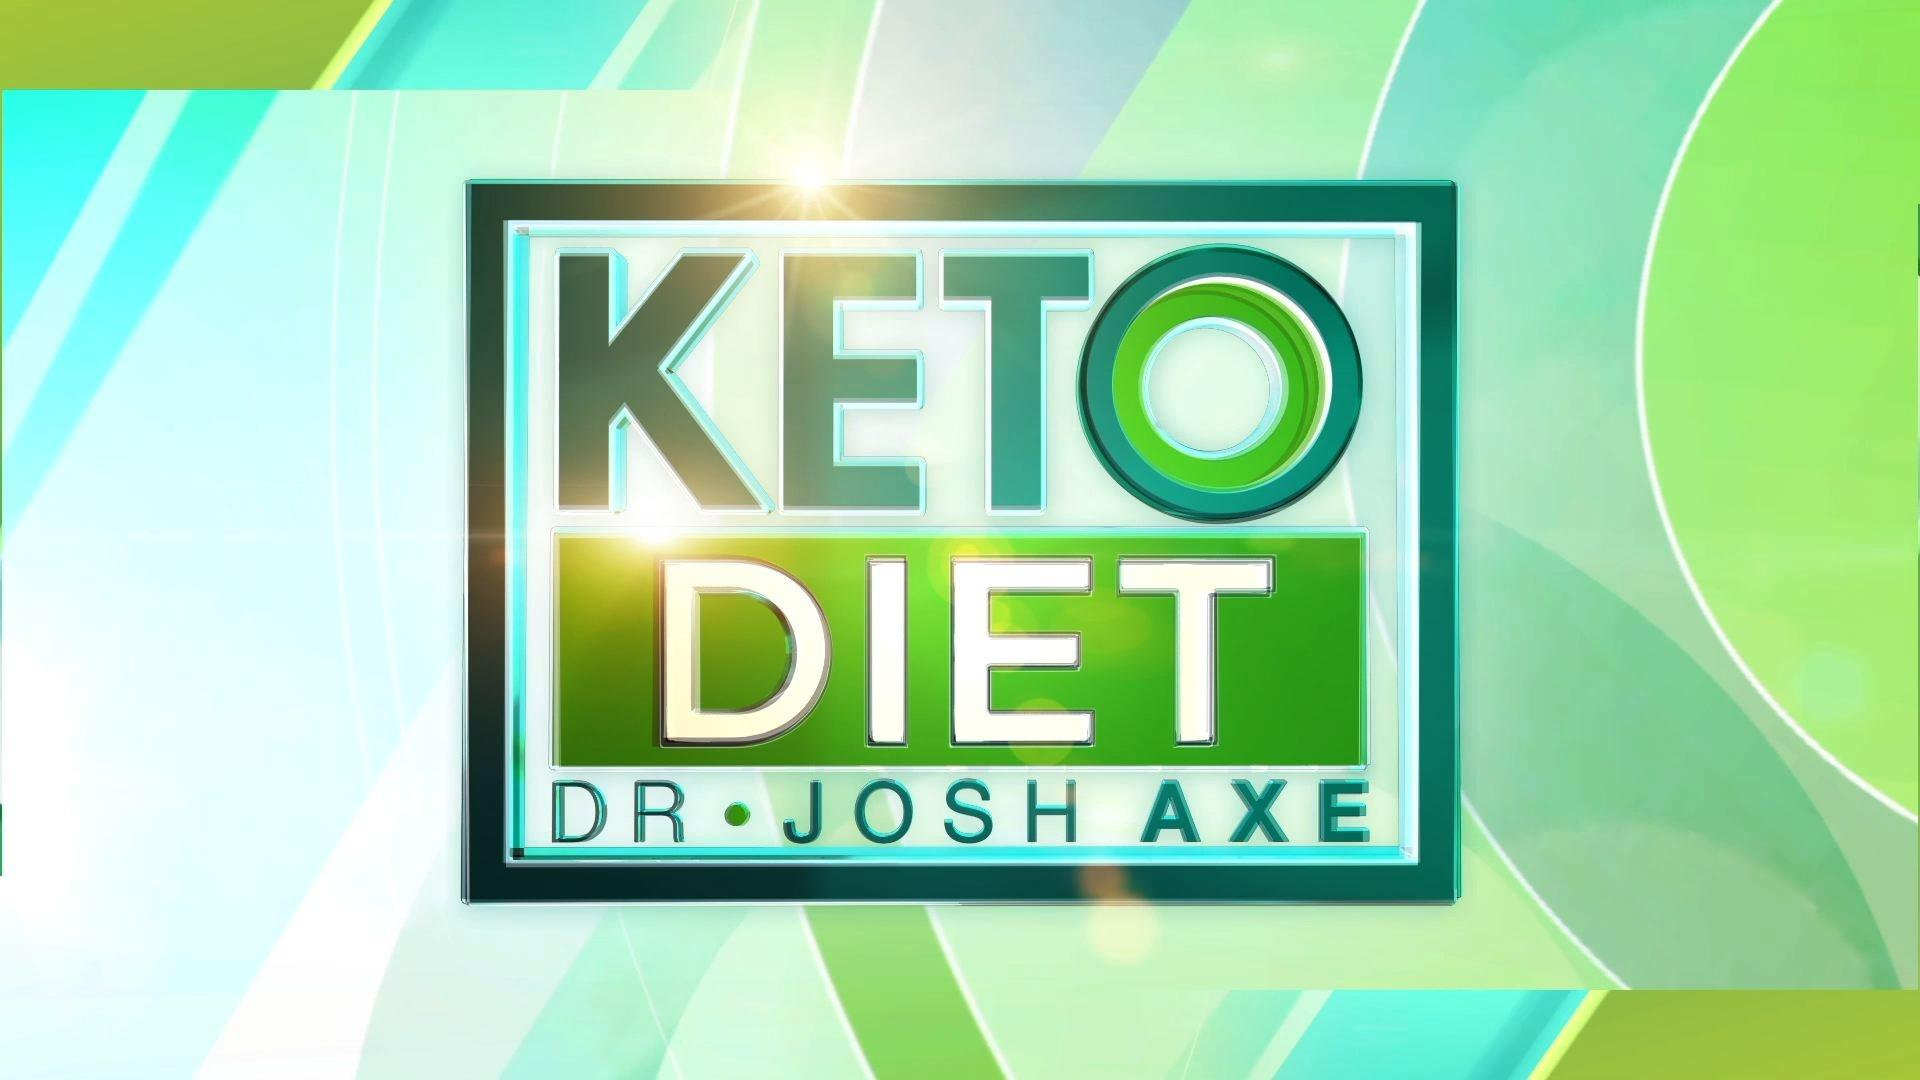 The Keto Diet with Dr Josh Axe